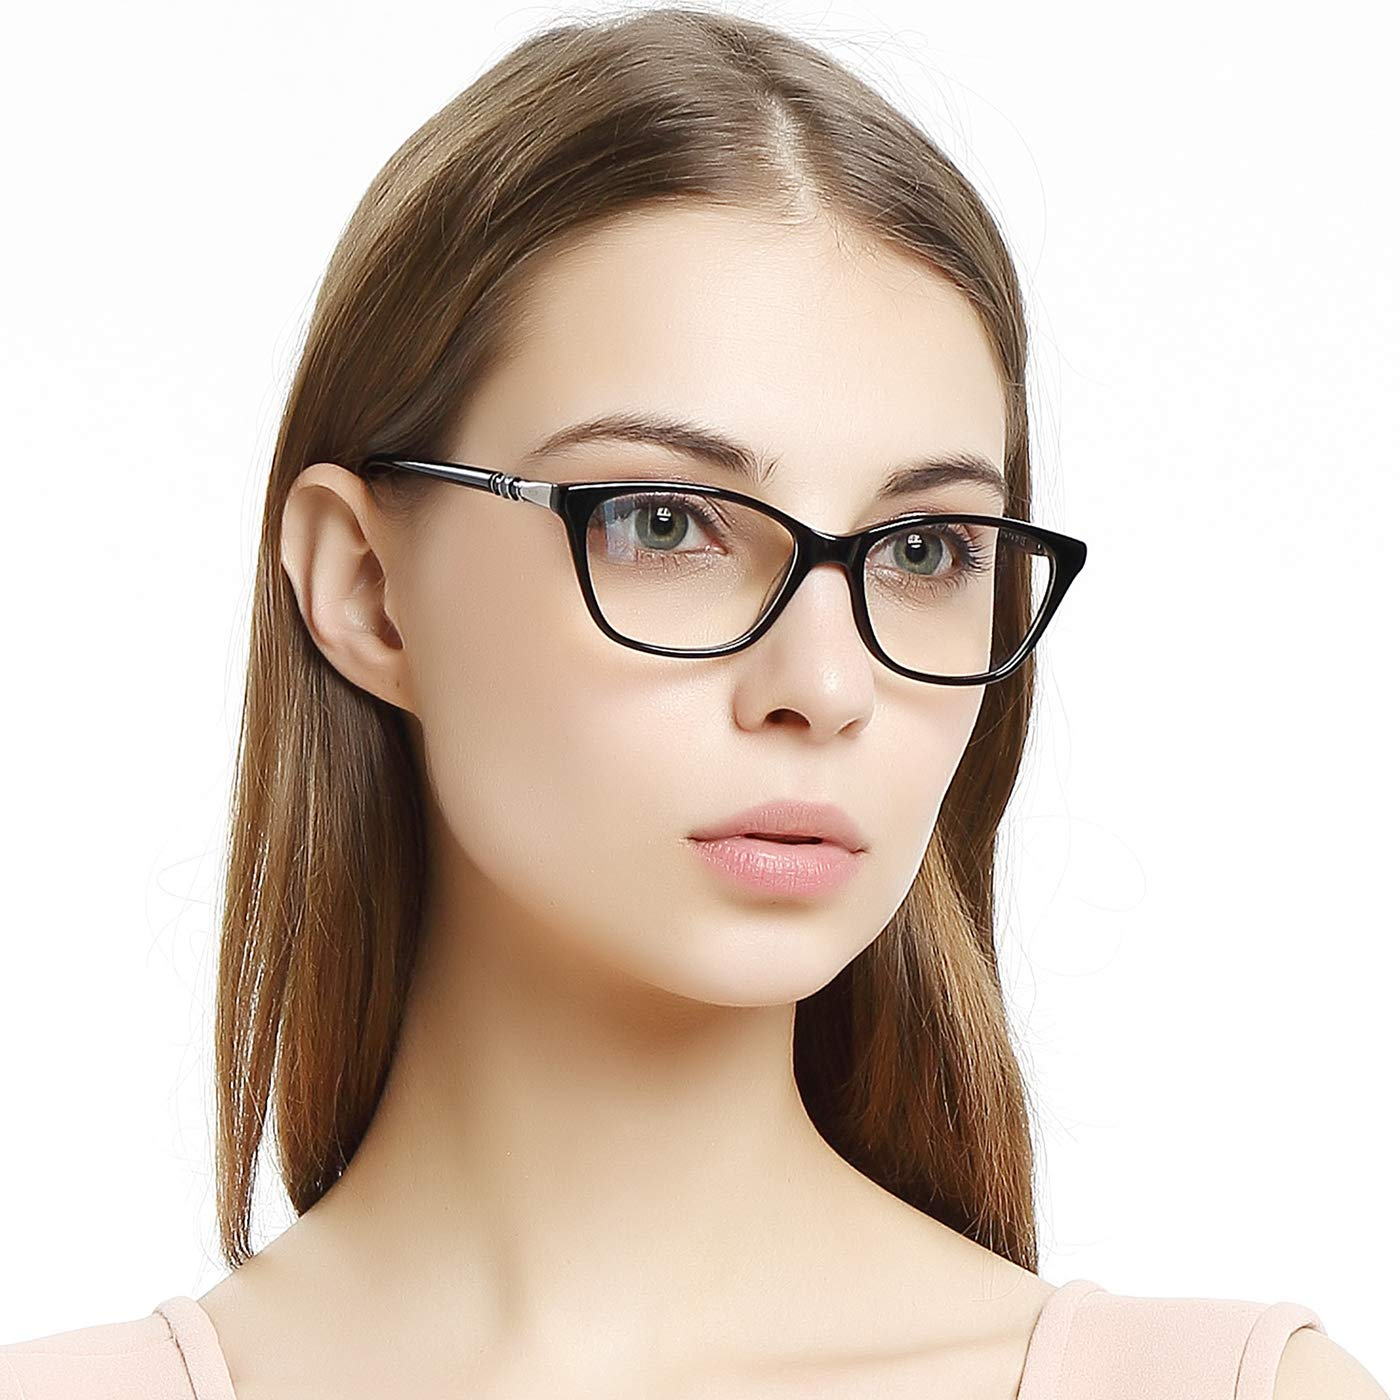 OCCI CHIARI Women Casual Eyewear Frames Non-Prescription Clear Lens eyeglasses (Black_50)